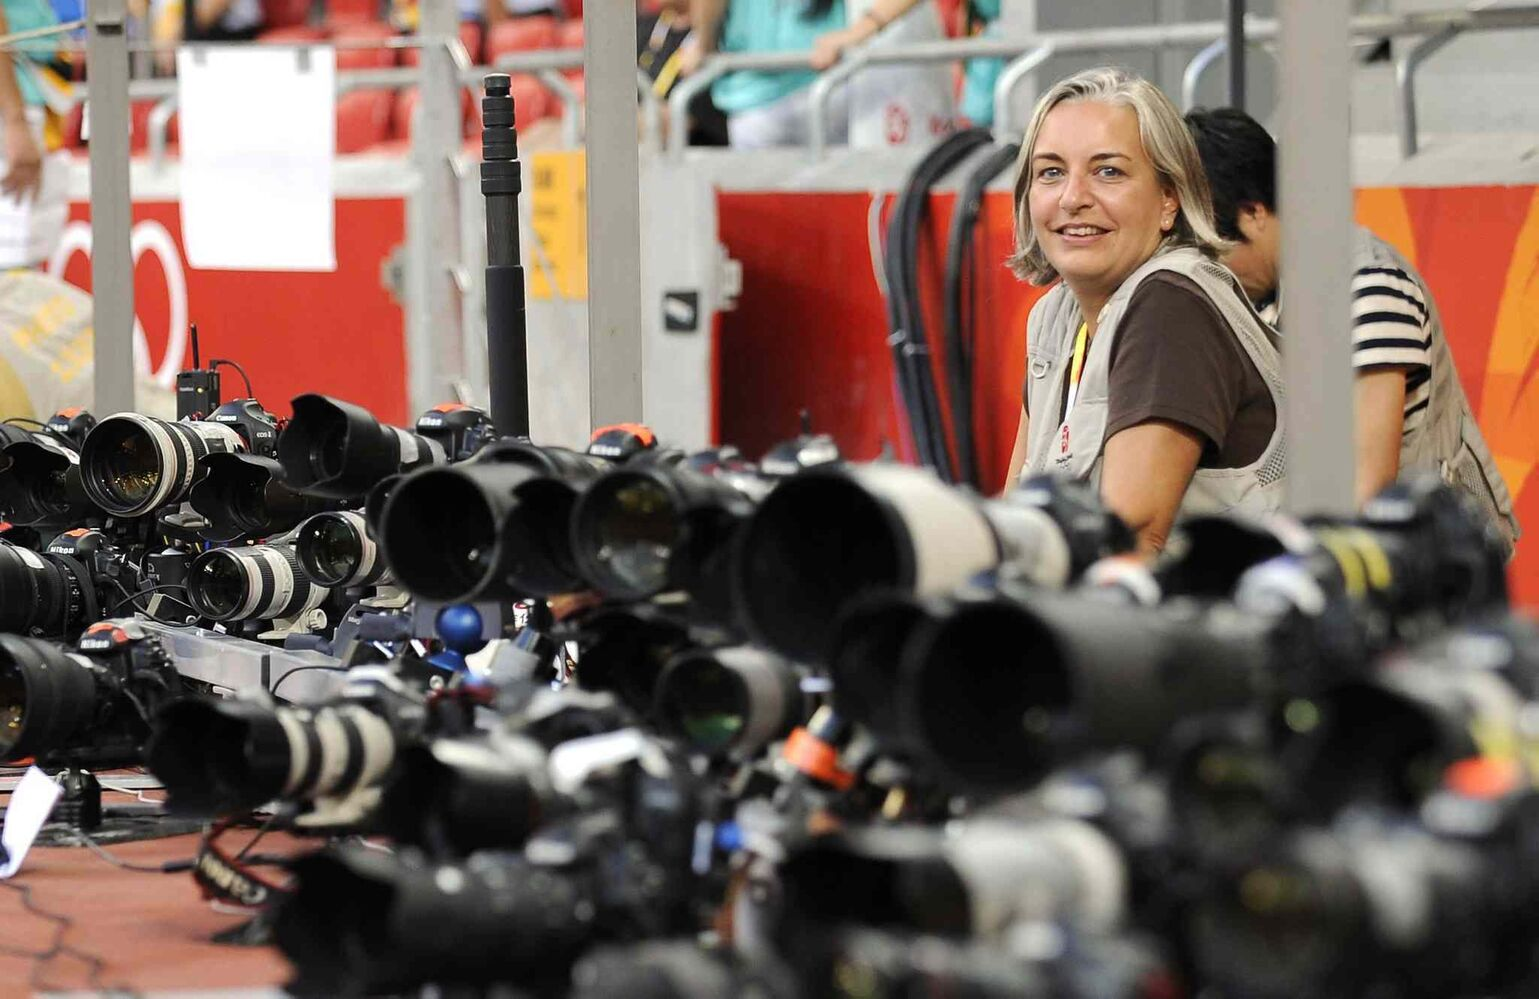 Associated Press photographer Anja Niedringhaus, 48, an internationally acclaimed German photographer, was killed and AP reporter Kathy Gannon was wounded on Friday, April 4, 2014 when an Afghan policeman opened fire while they were sitting in their car in eastern Afghanistan.  The photos that follow celebrate her remarkable photojournalism. (Mark J. Terrill / The Associated Press)